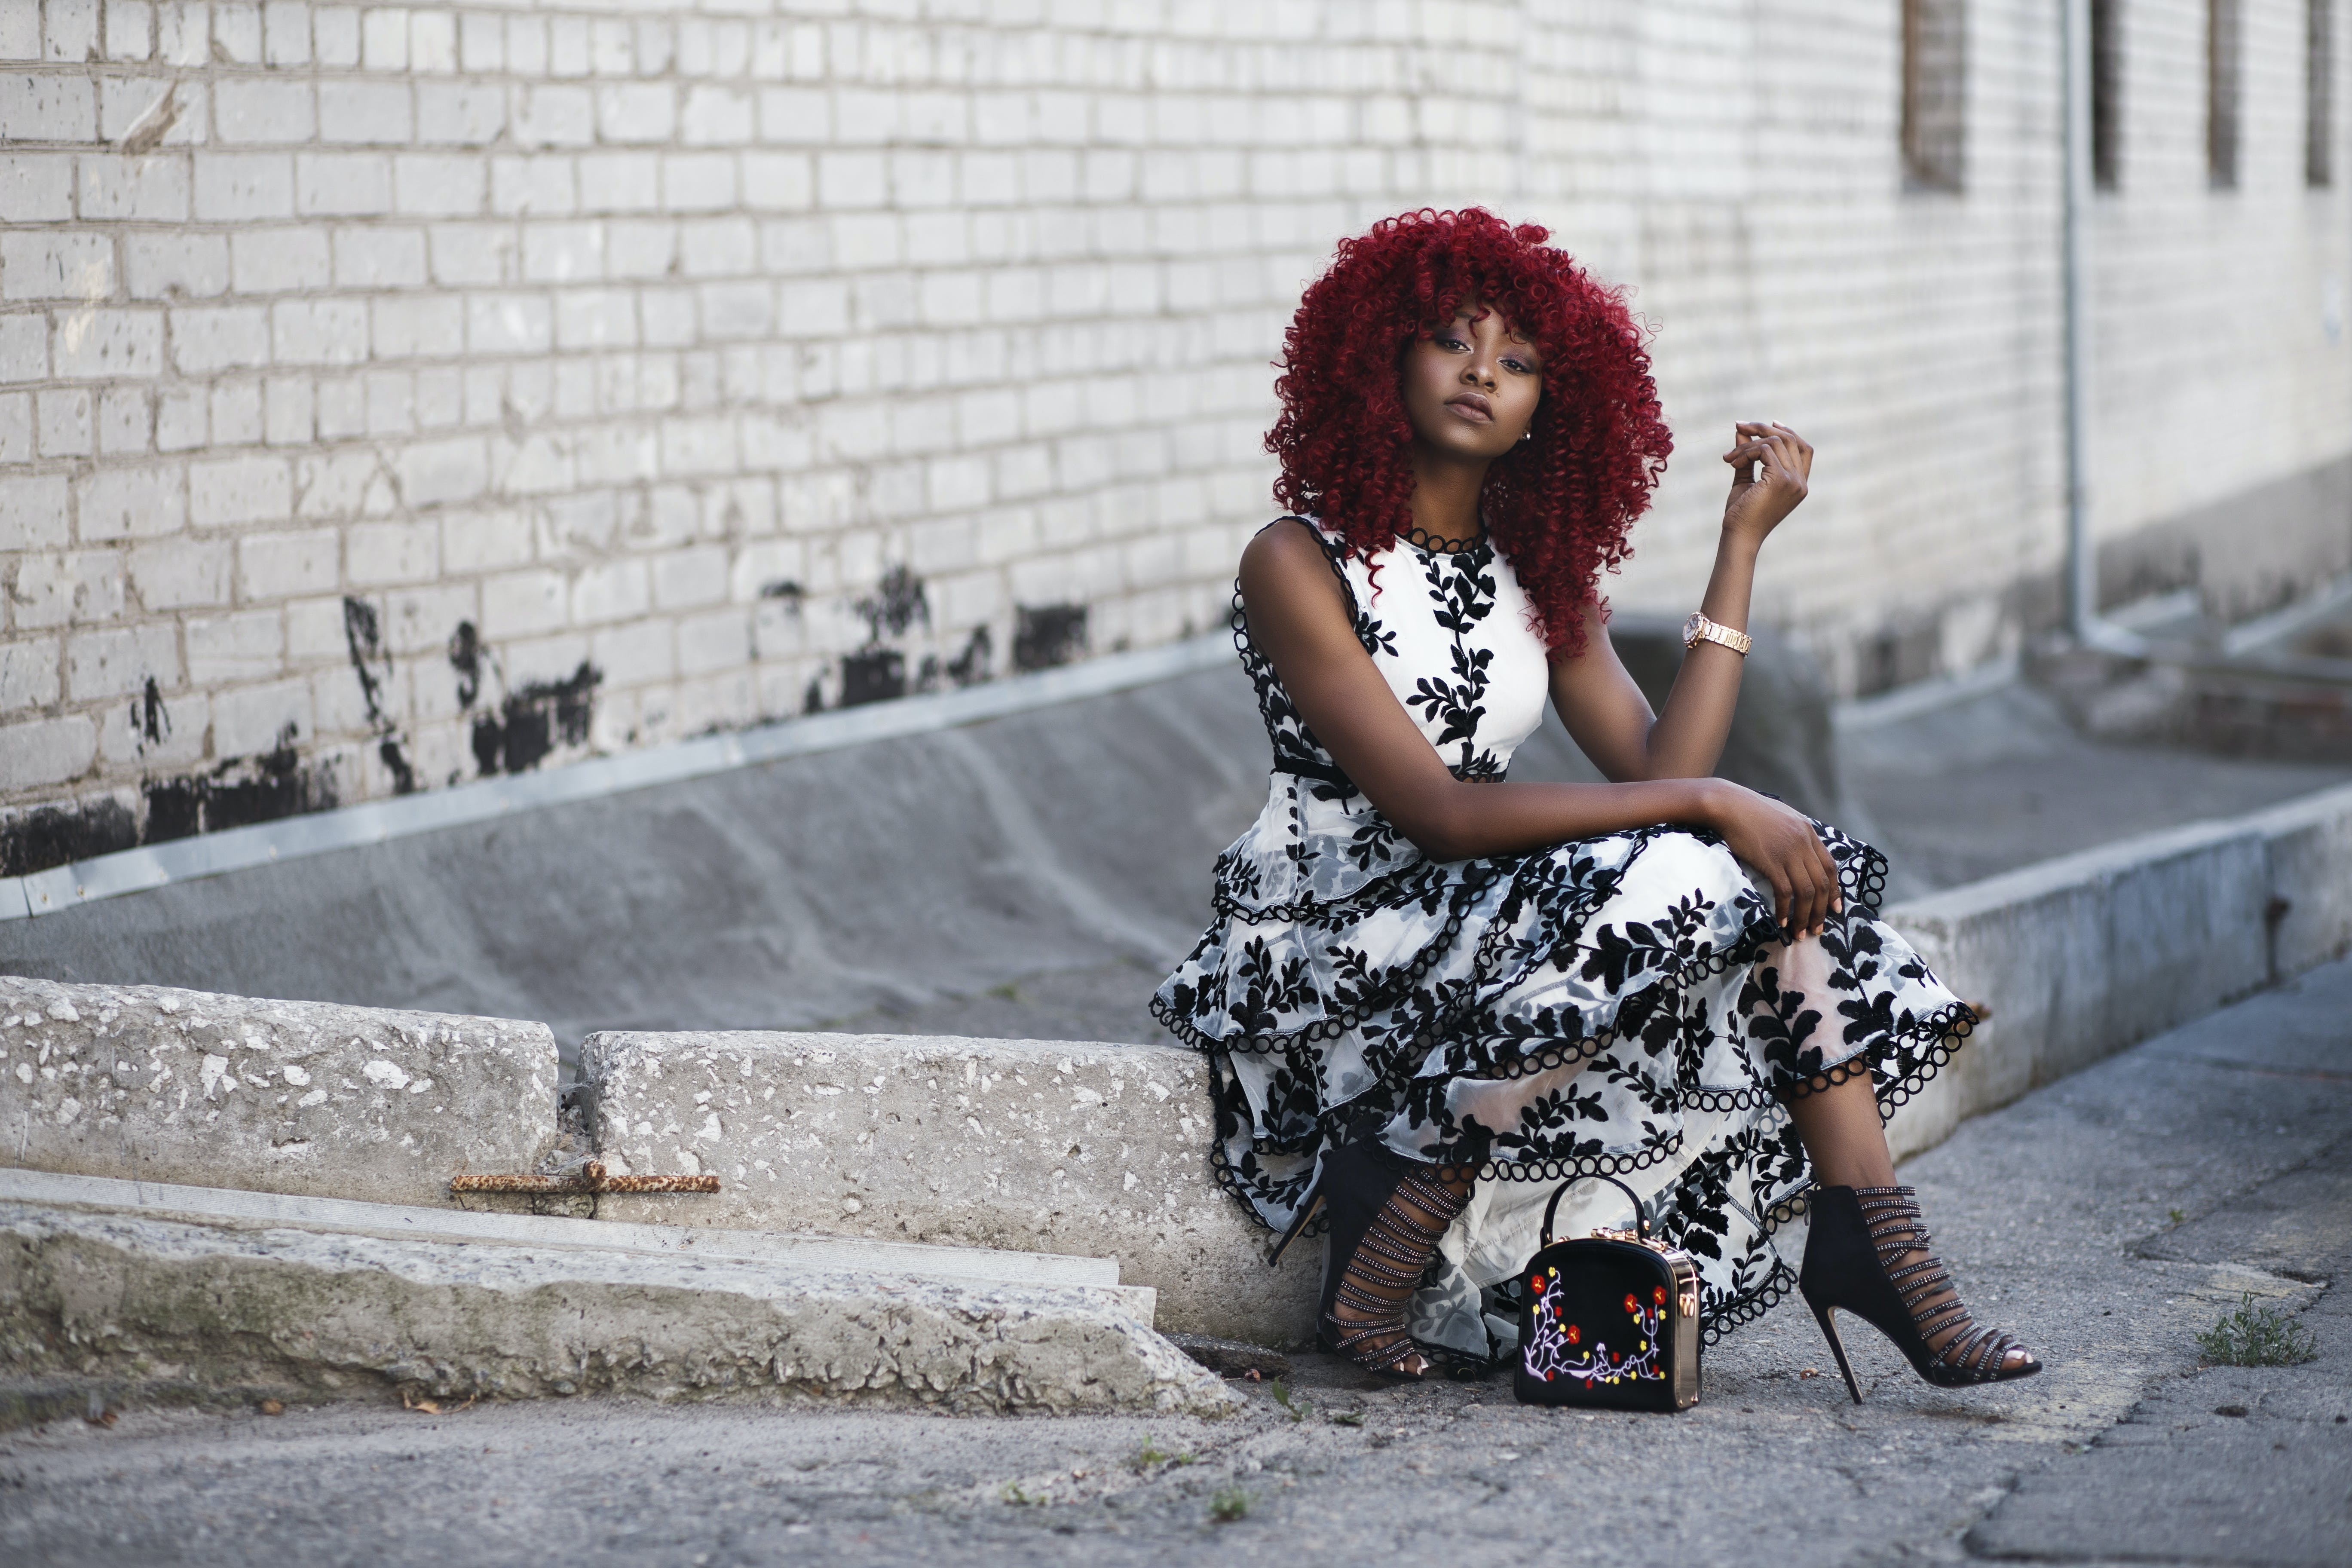 Red Haired Woman in White and Black Floral Sleeveless Maxi Dress